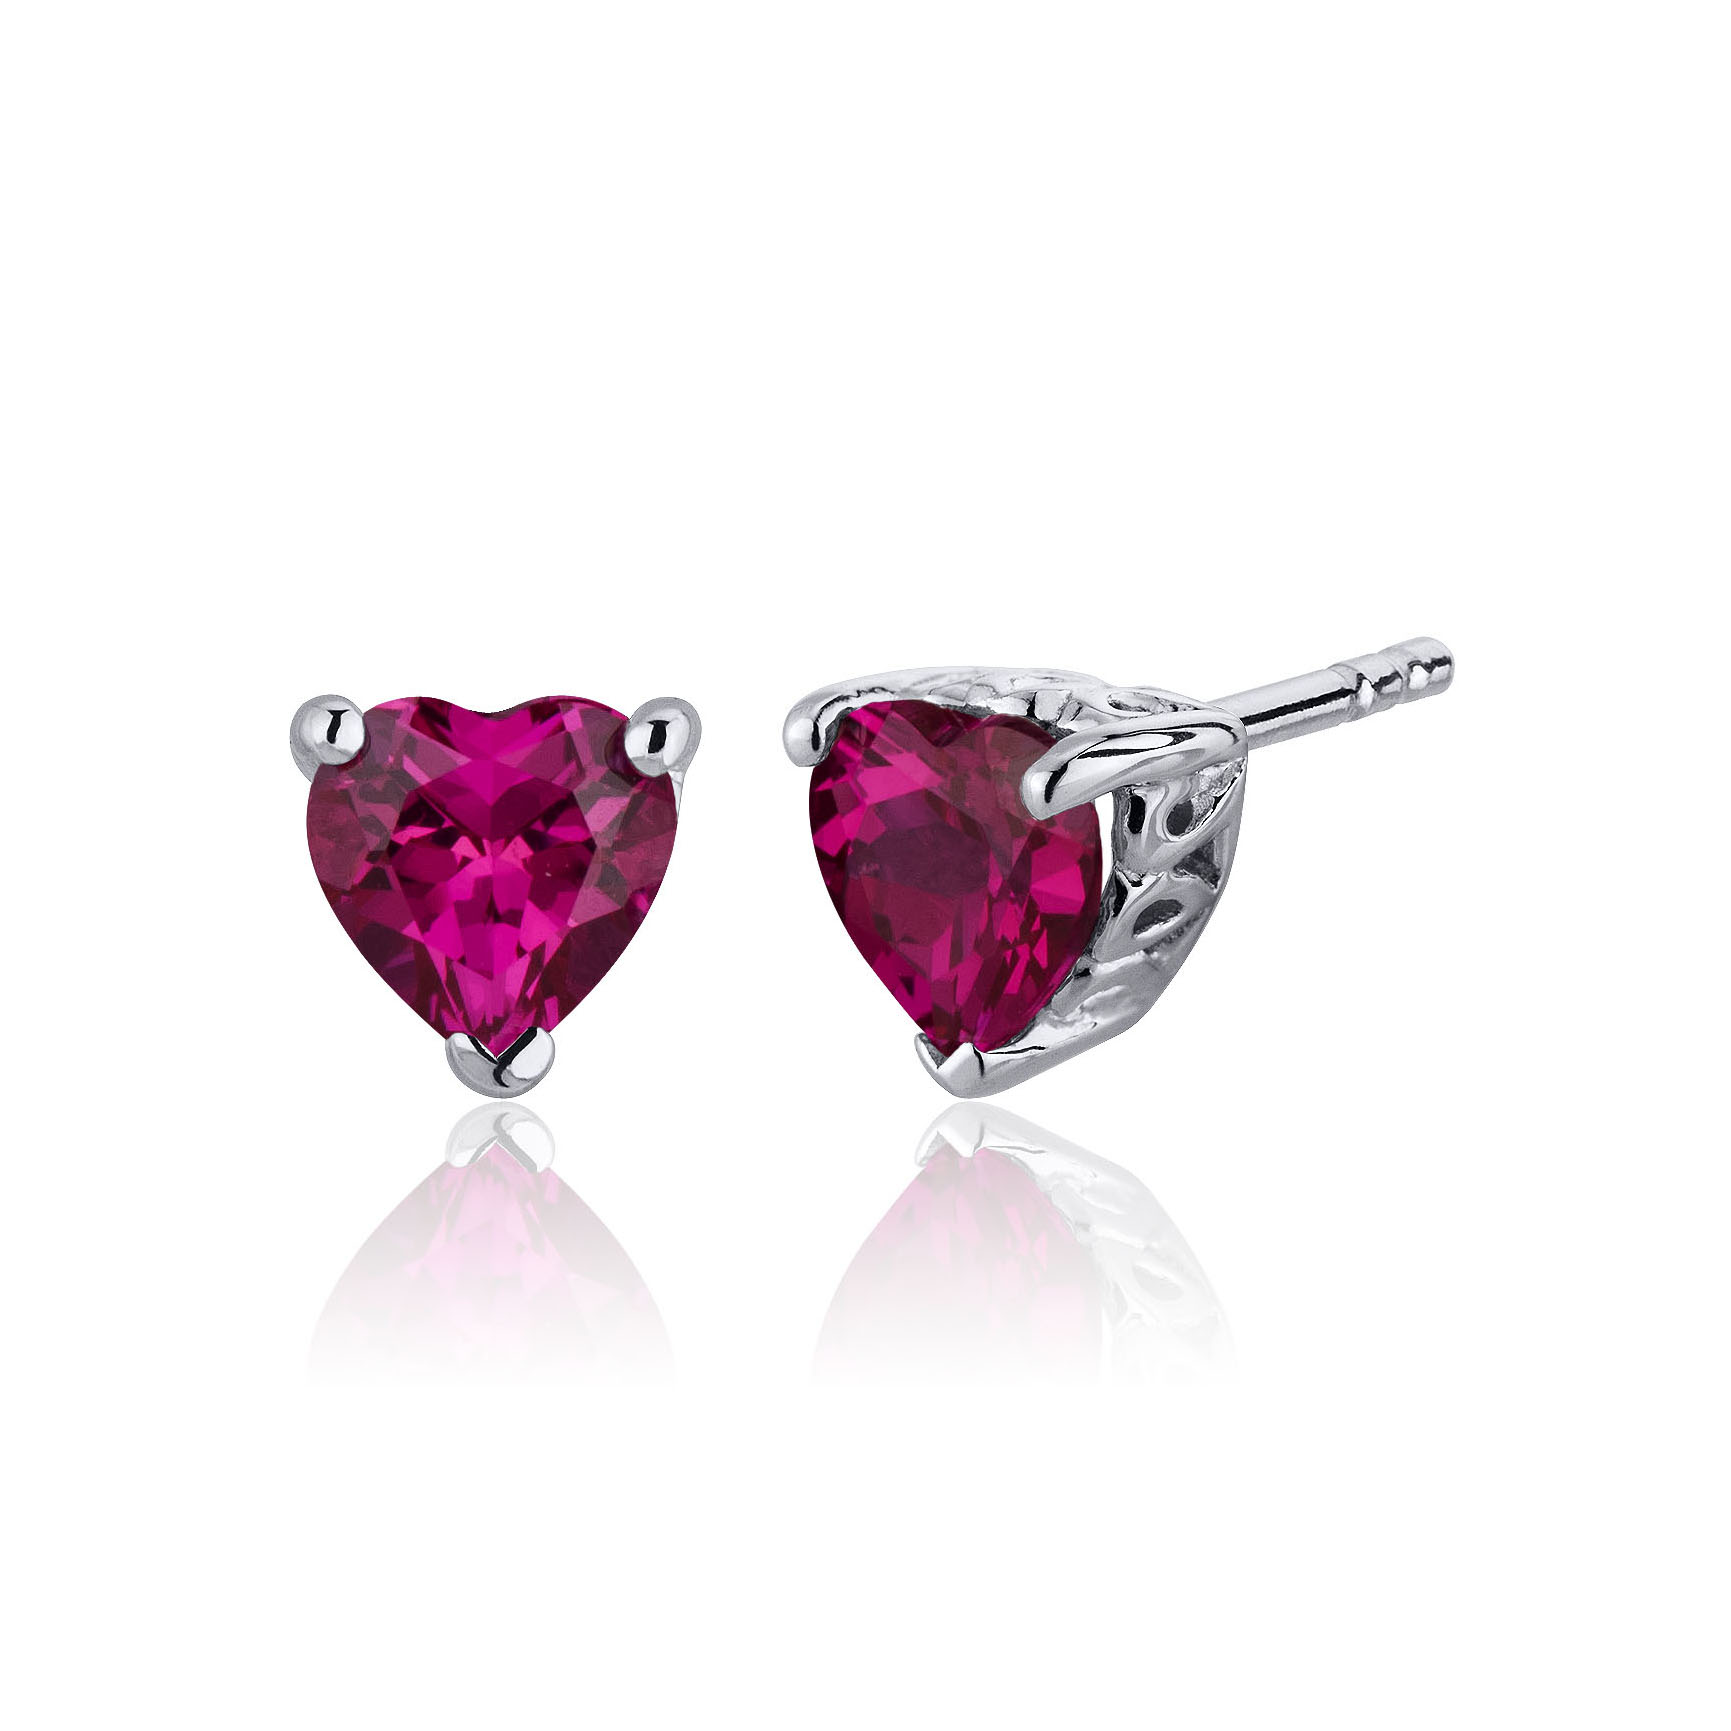 Heart Shaped Ruby Stud Earrings in Sterling Silver